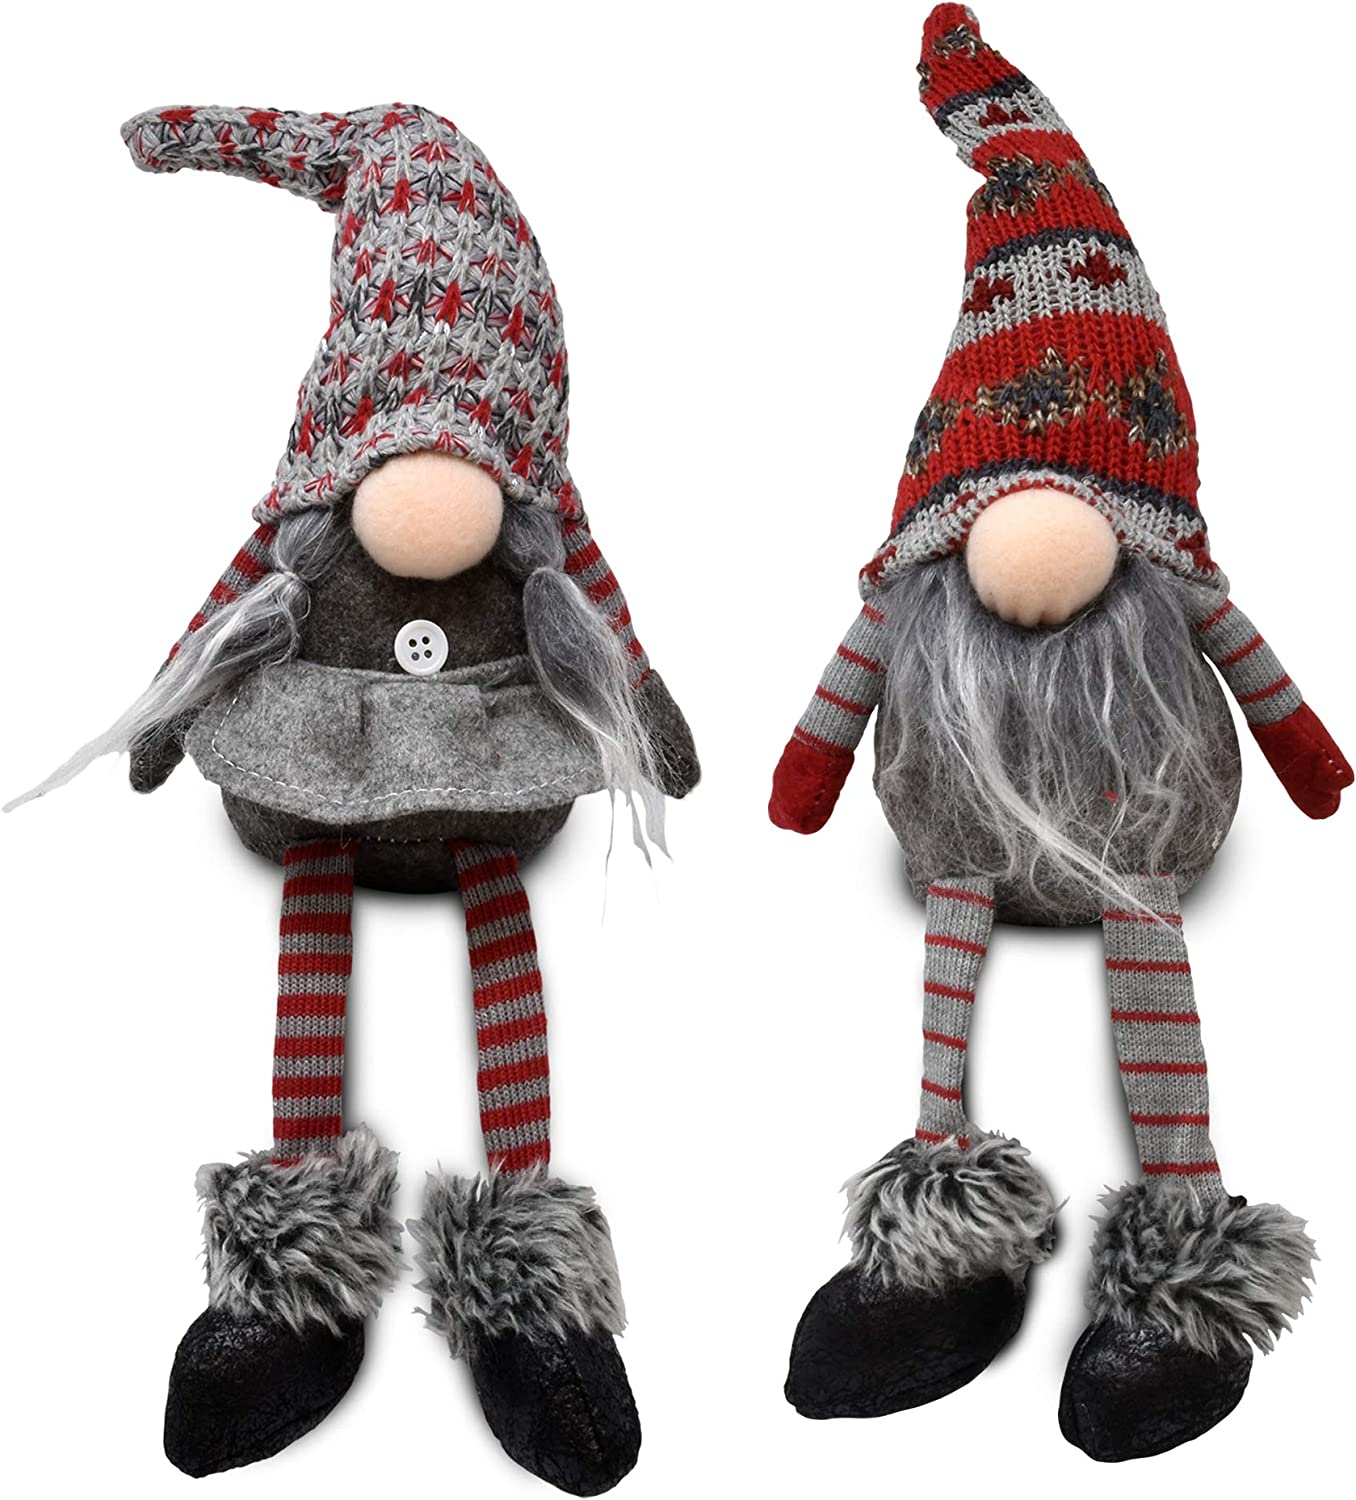 Gift Boutique Plush Christmas Gnome Shelf Sitter Decoration, 2 Pack Stuffed Gnome Figurines Decor for Home Table Shelf Desk Fireplace Mantle